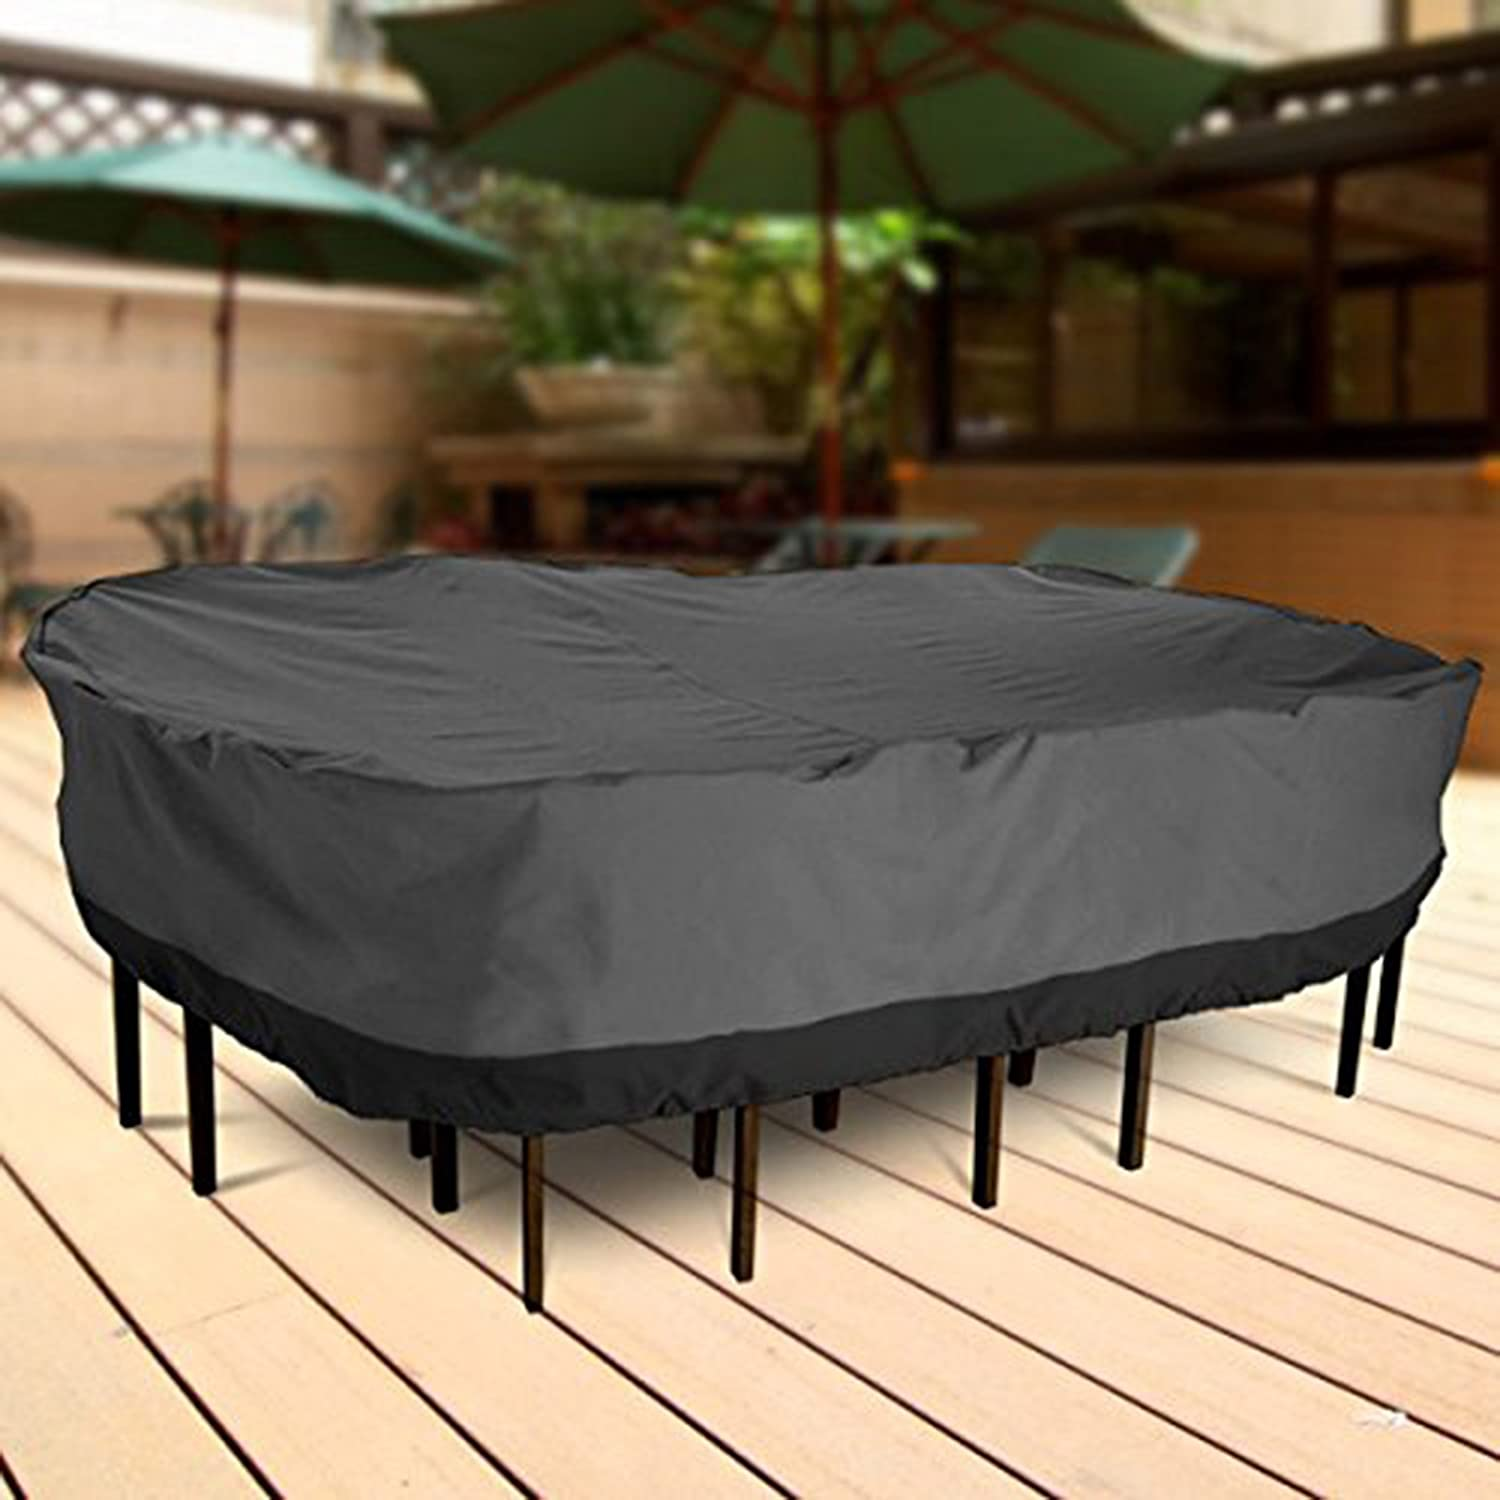 Amazoncom NEH Outdoor Patio Furniture Table and Chairs Cover